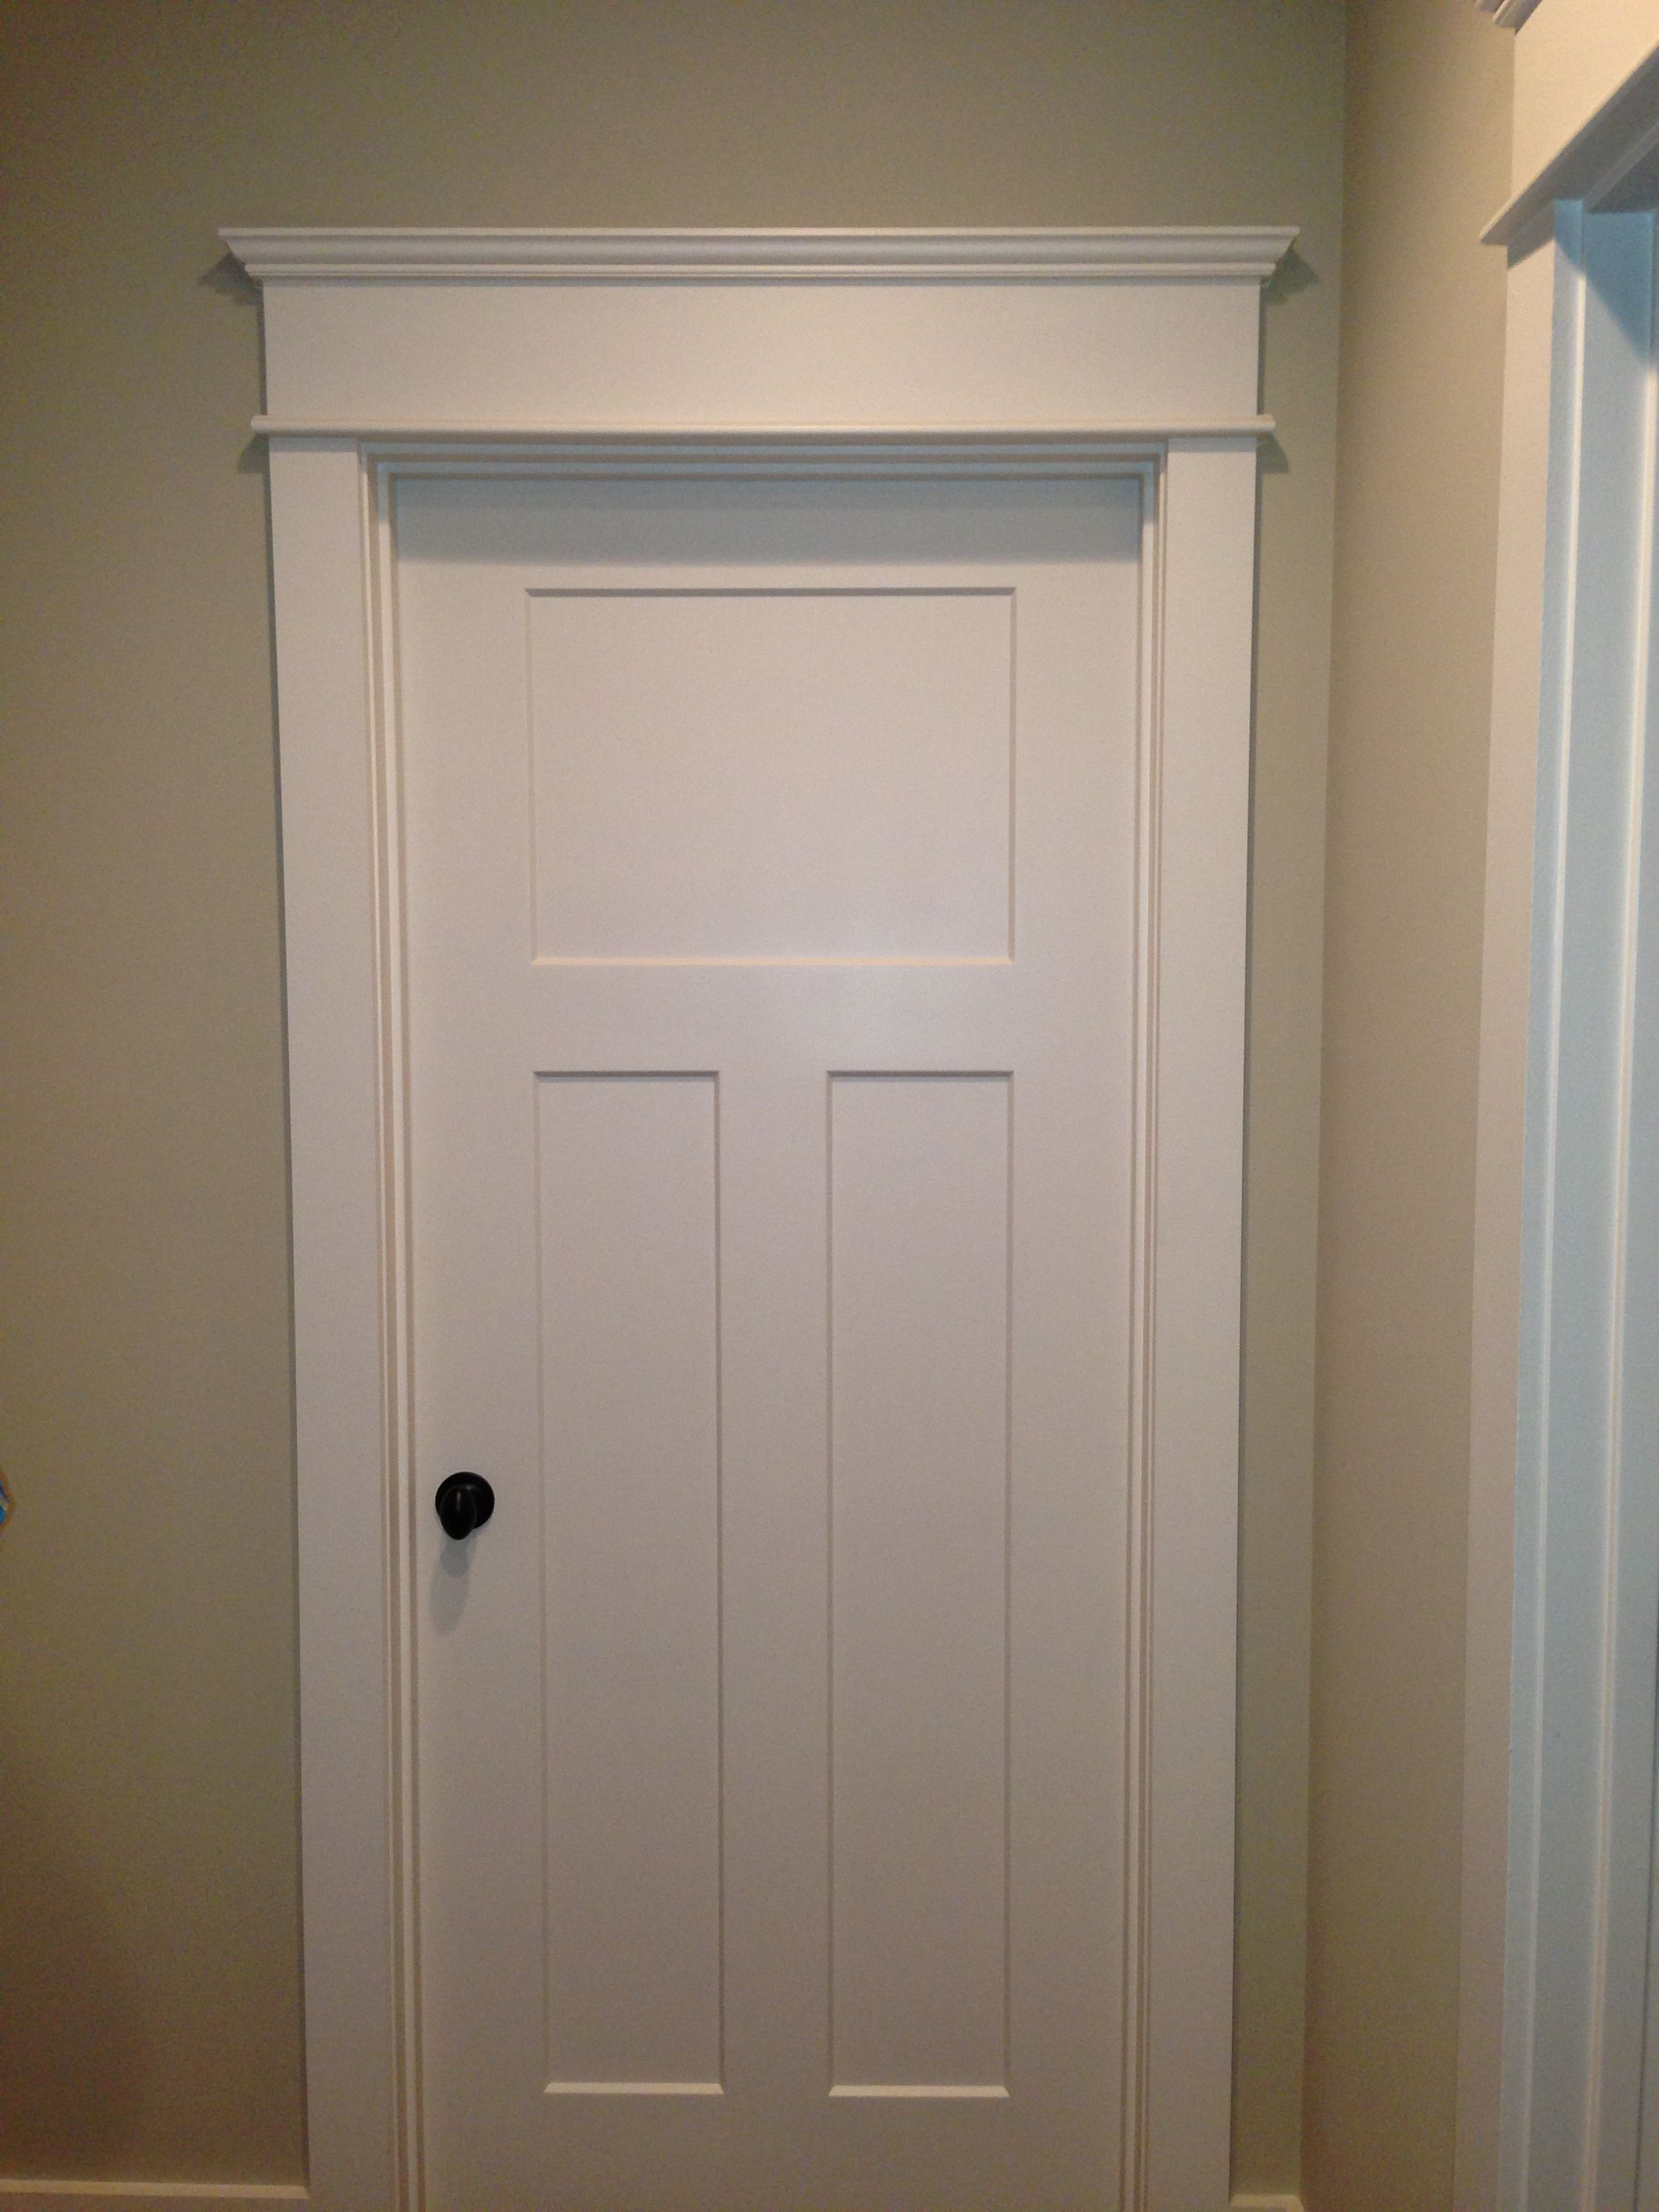 Interior doors & trim | Interior Barn Doors | Pinterest